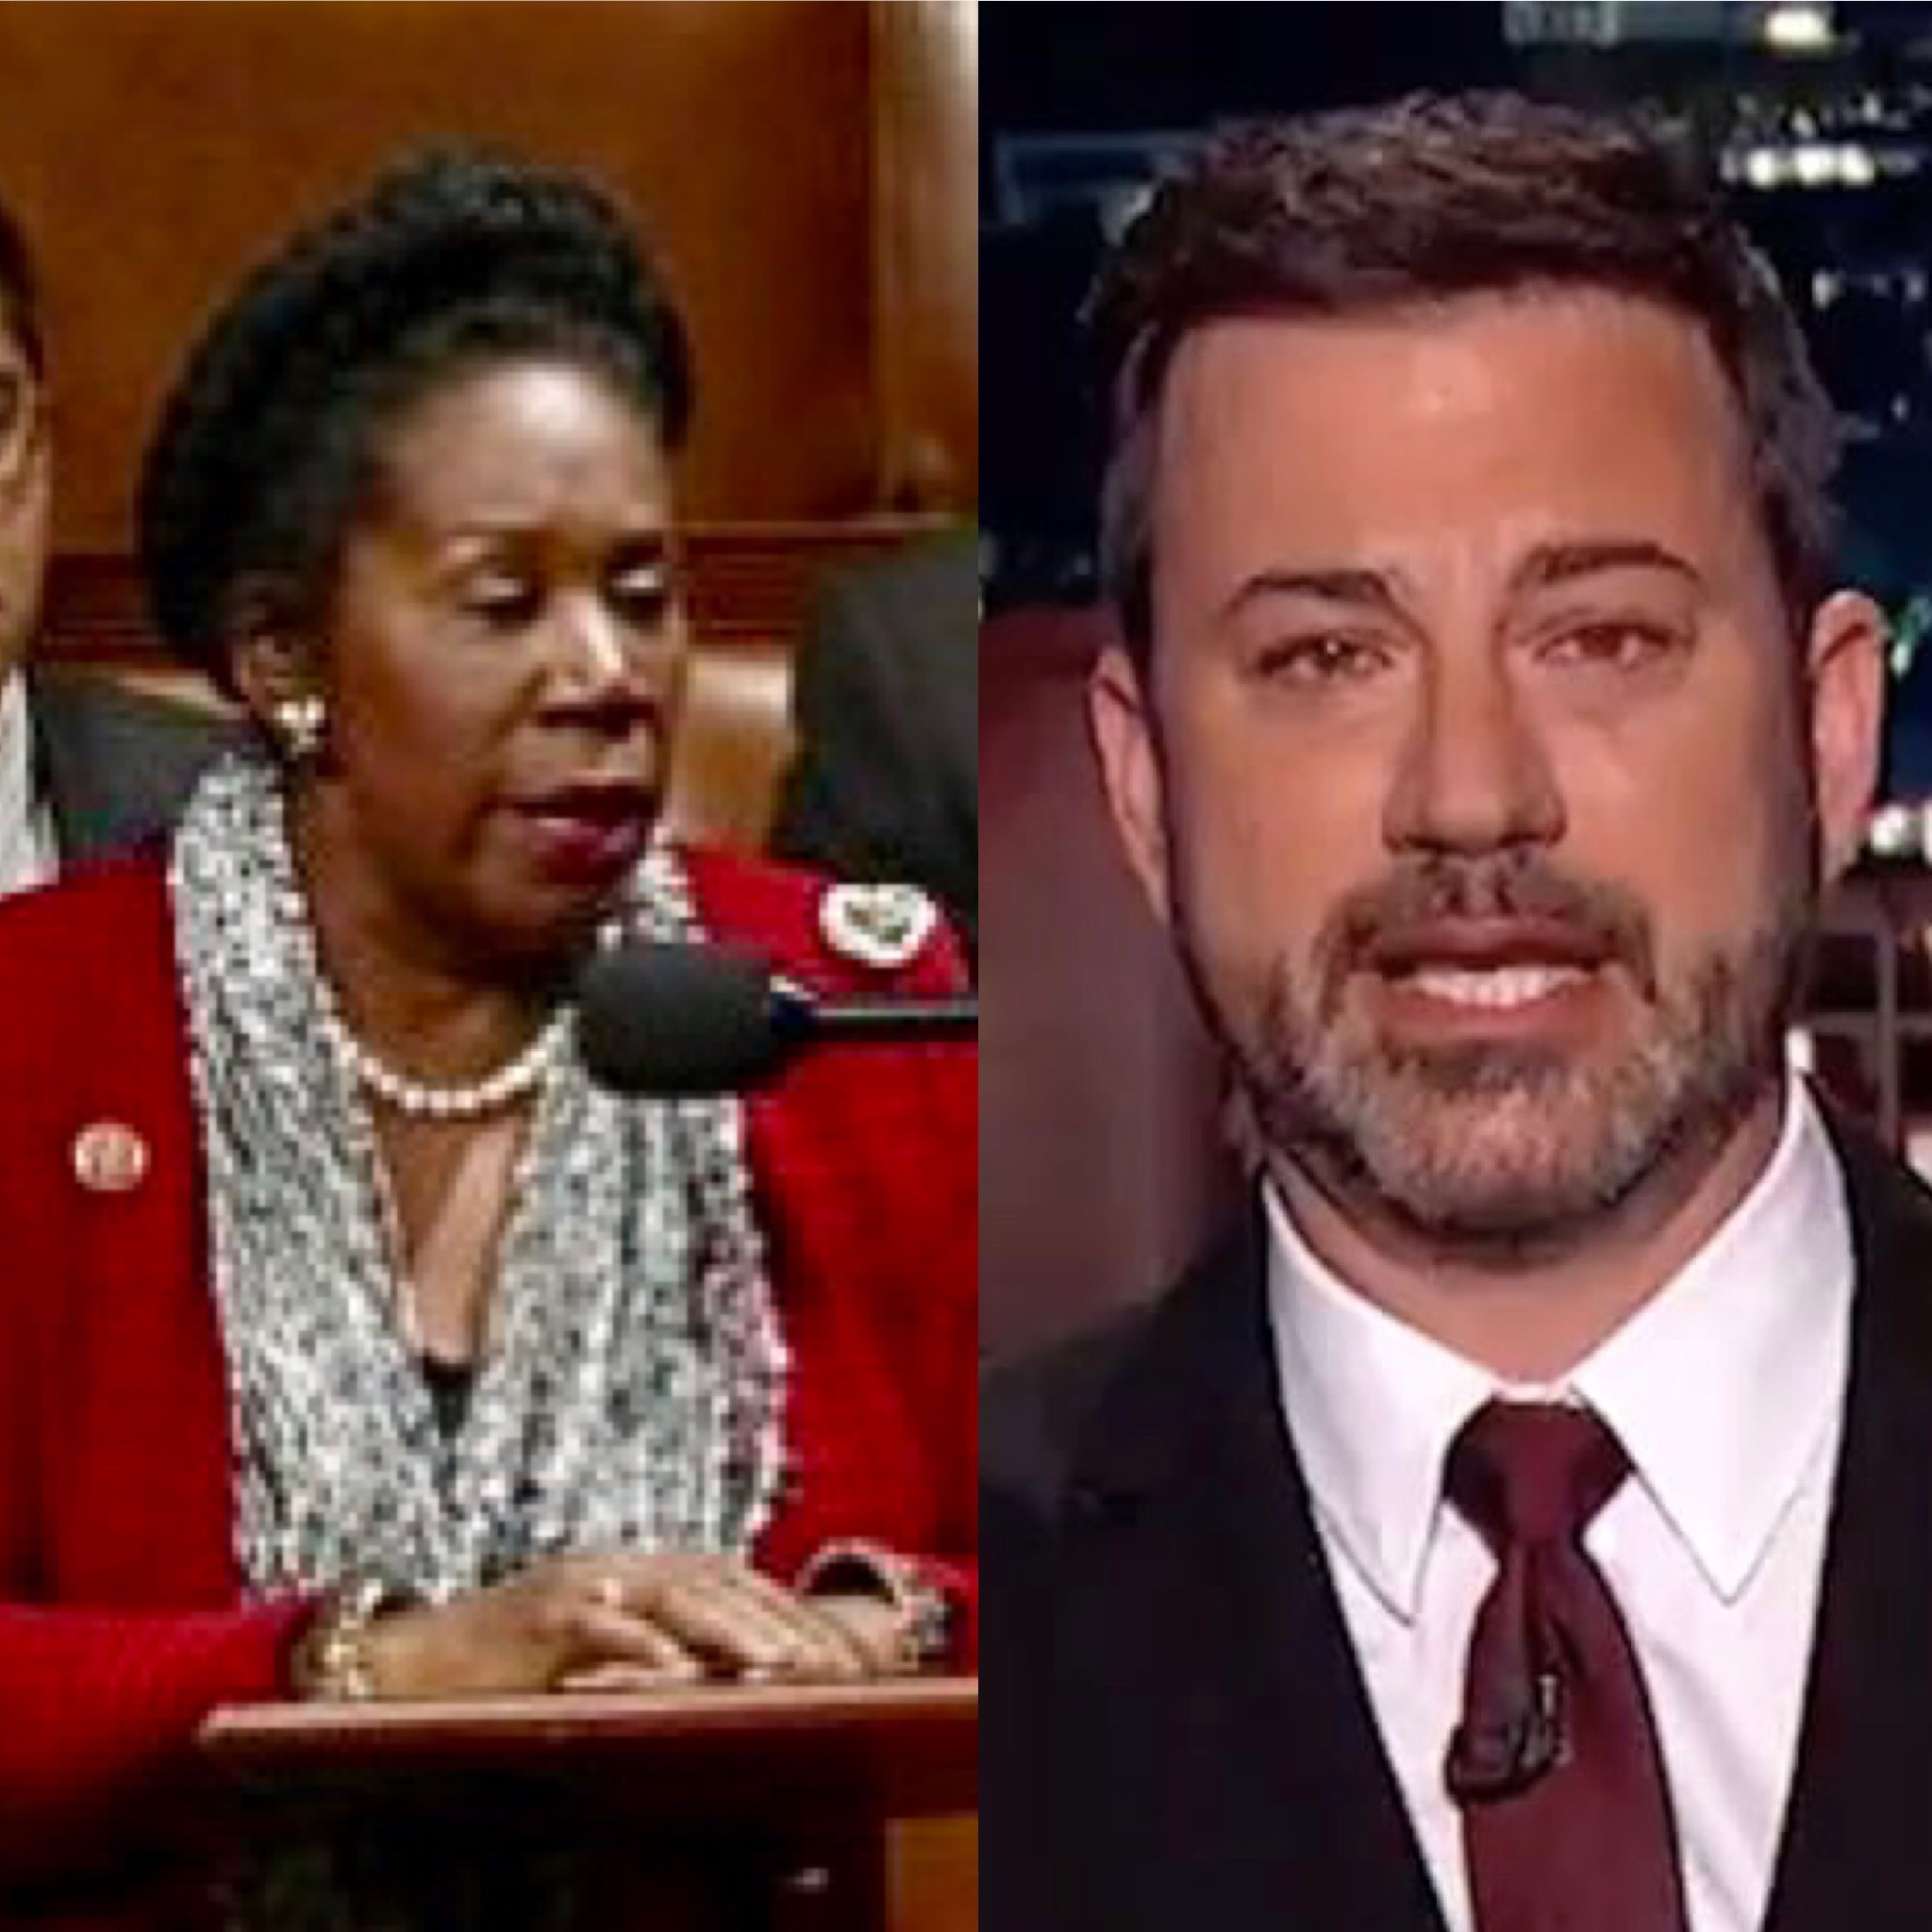 Rep. Sheila Jackson Lee and Jimmy Kimmel